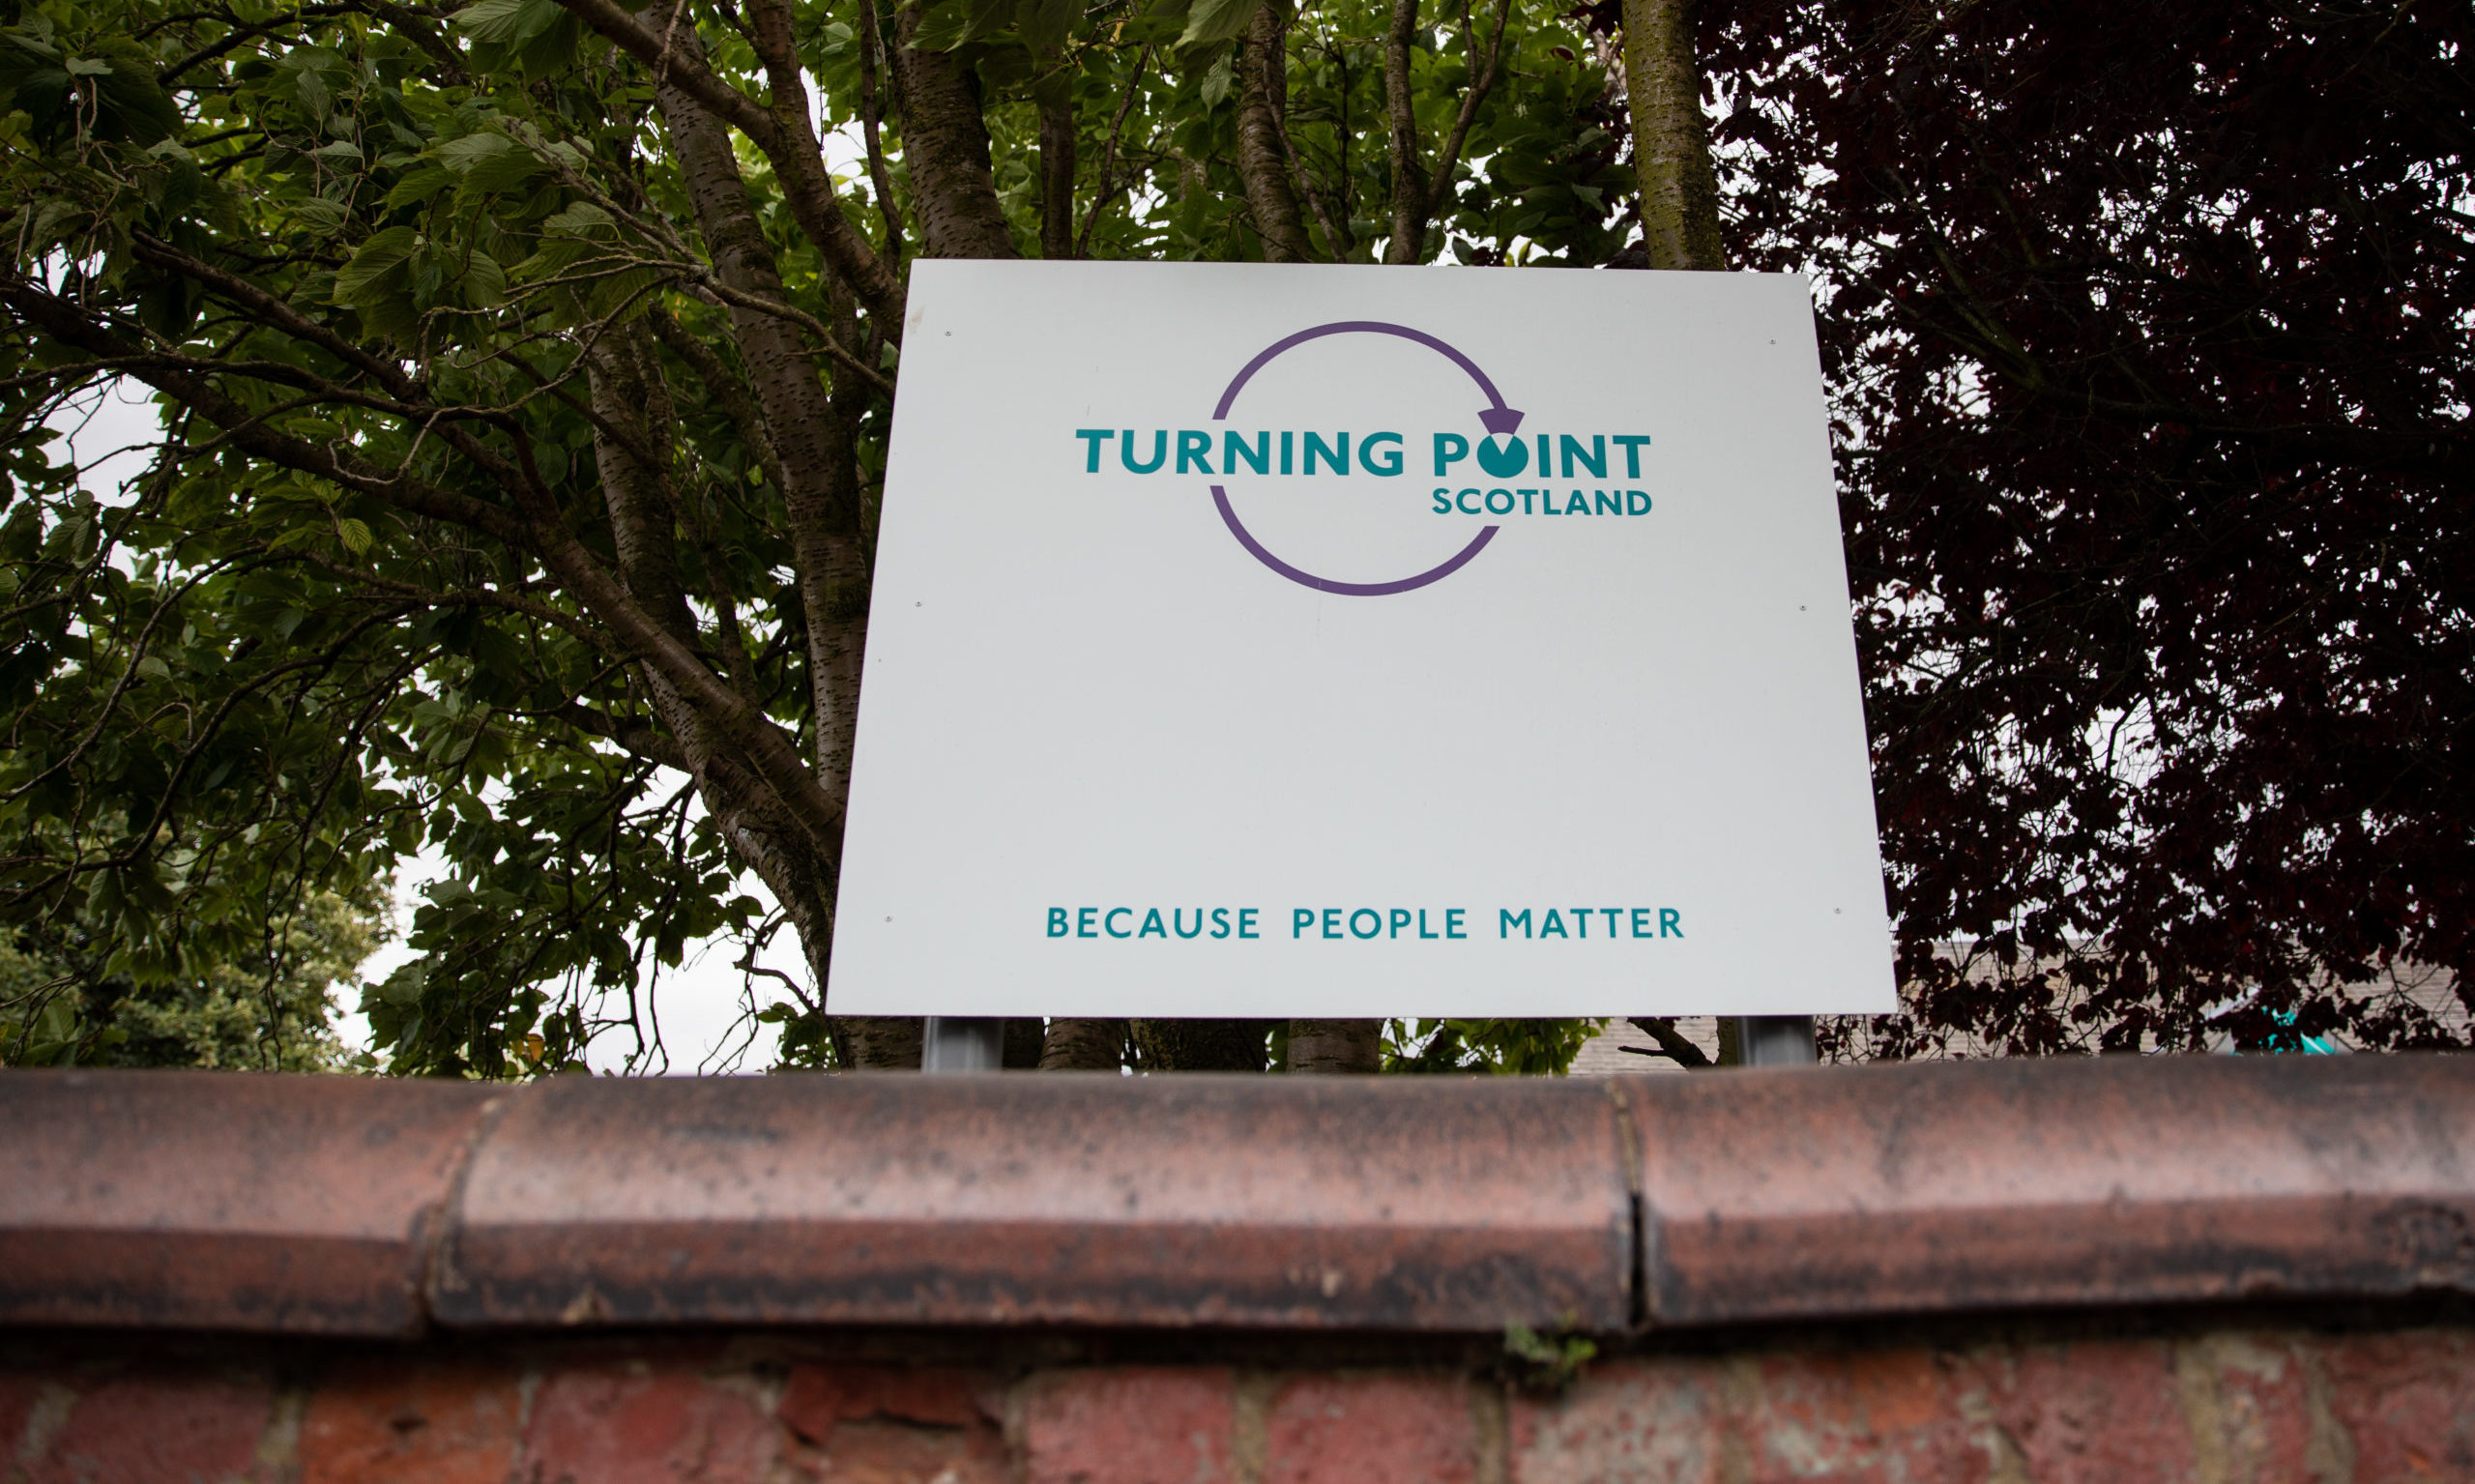 Turning Point Scotland staff in Perth can now supply the medication to service users if needed.